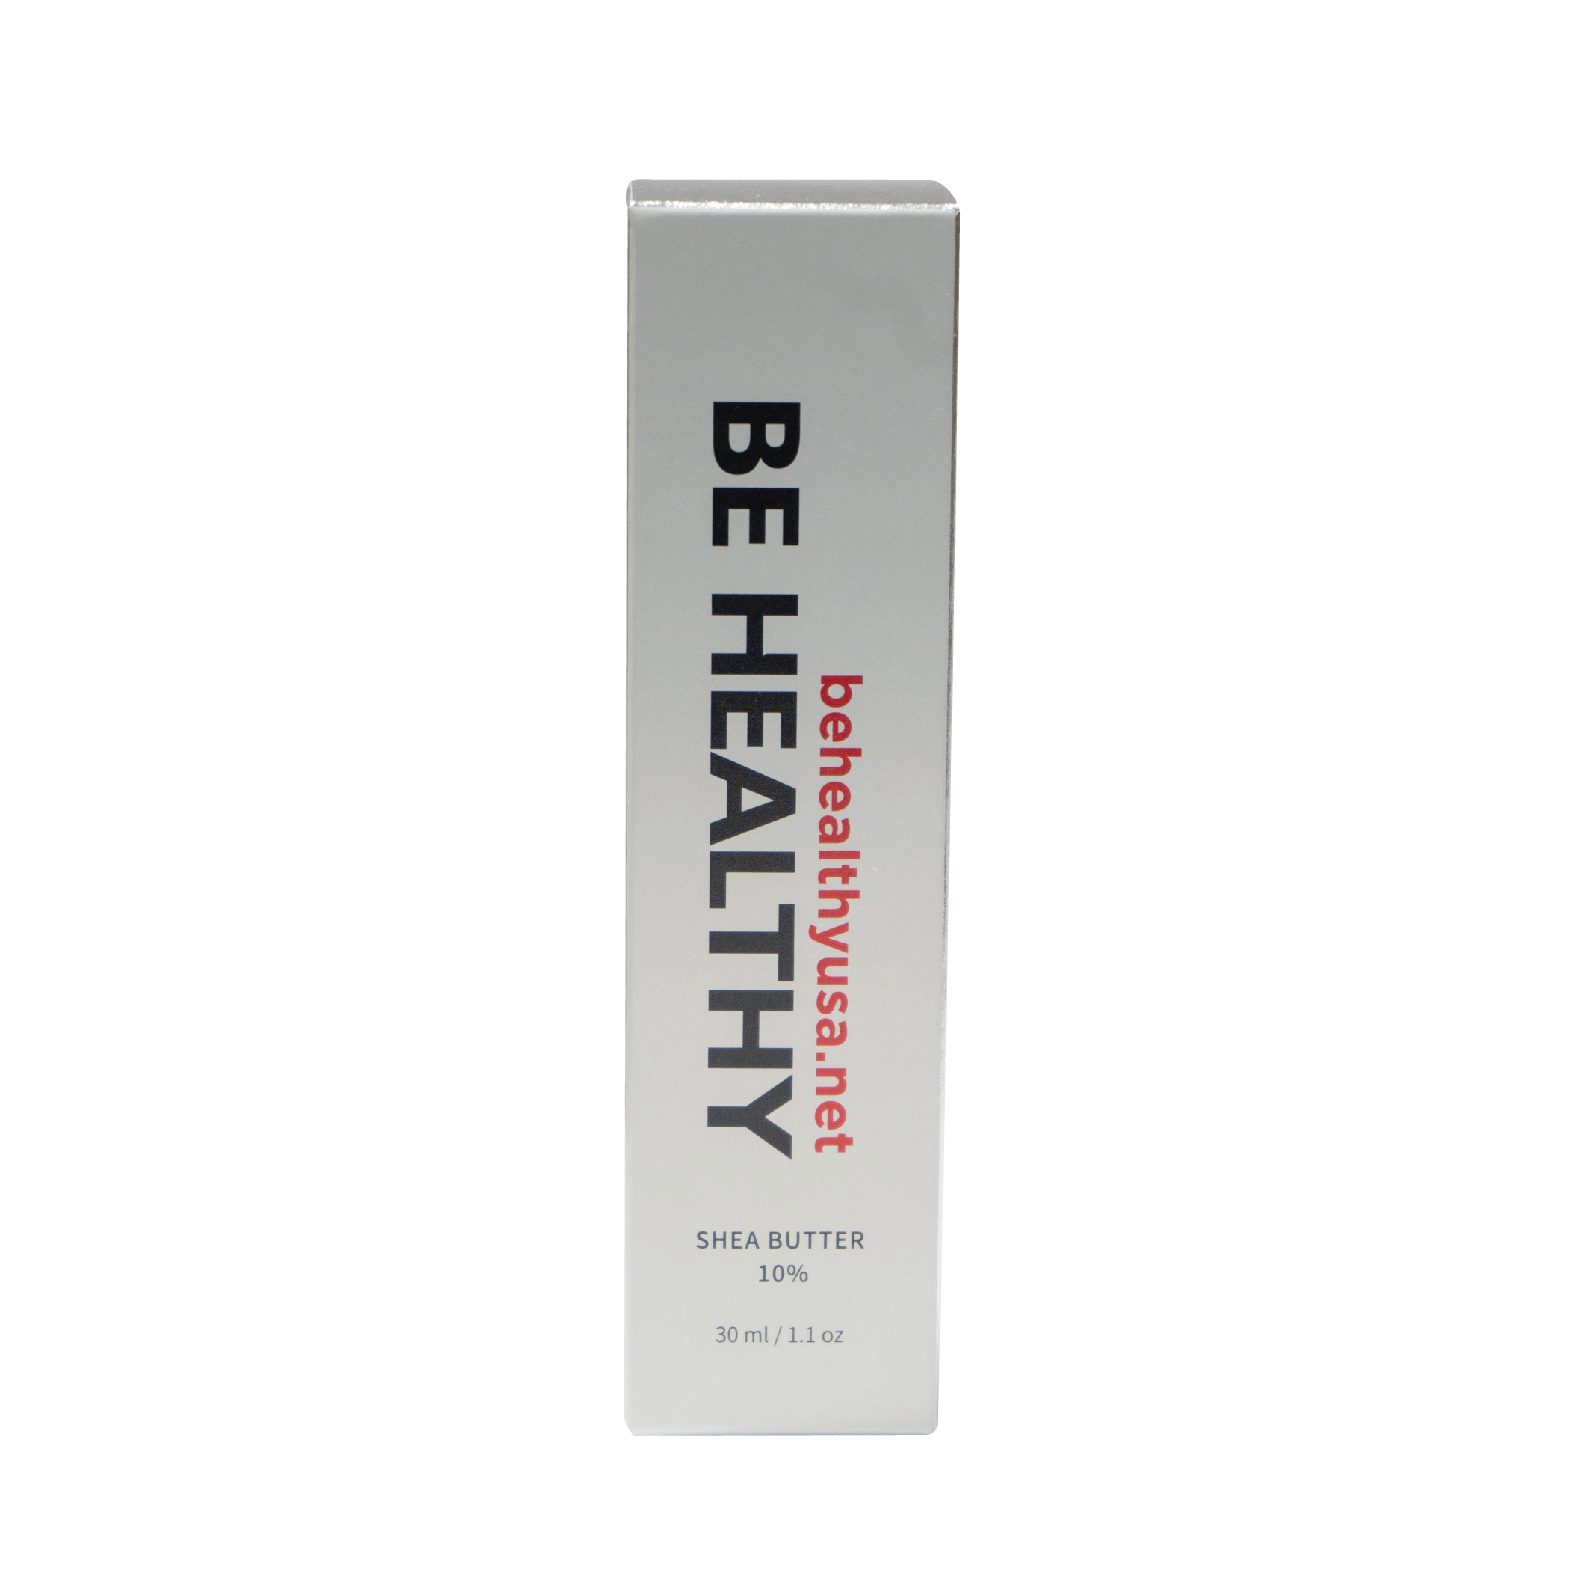 BE HEALTHY Shea Butter Hand Cream